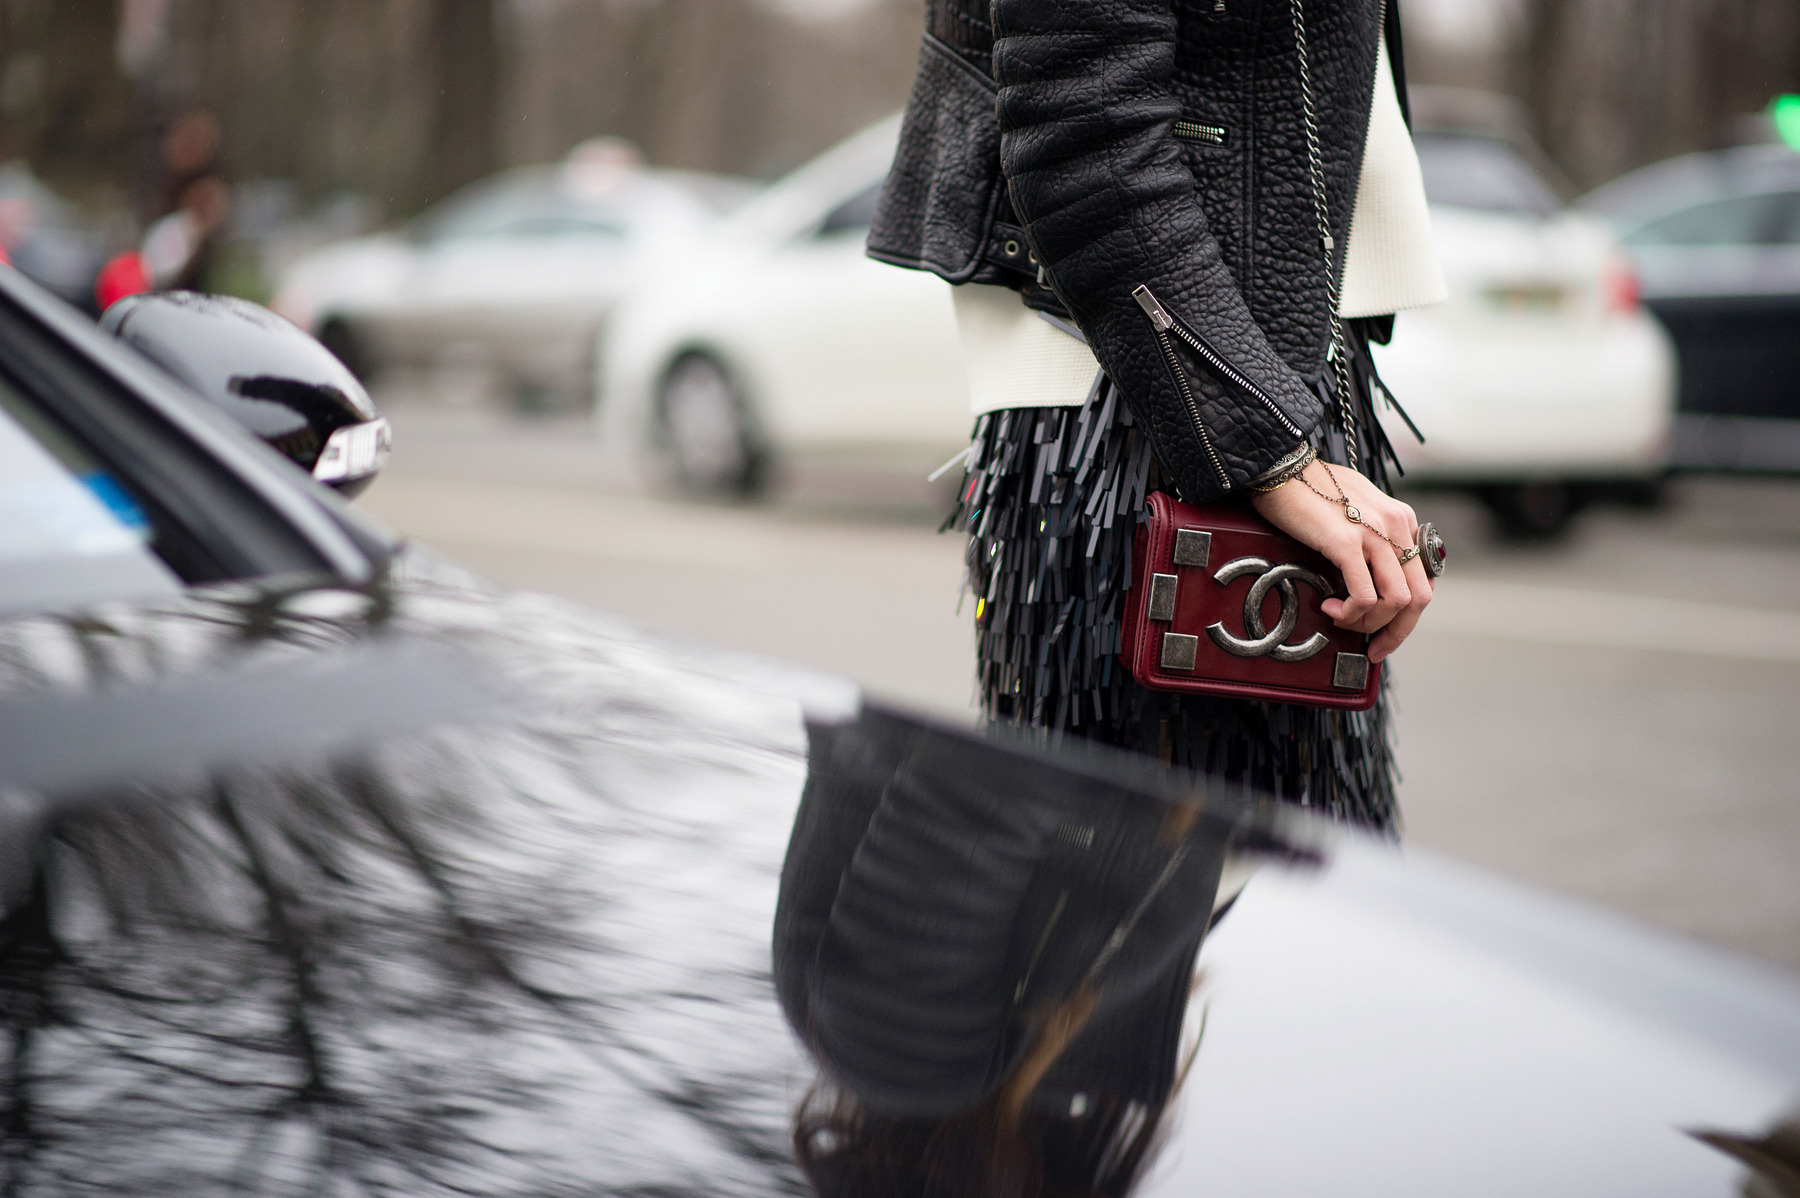 couture-stree-style-1-35.nocrop.w1800.h1330, fringe skirt, black leather moto jacket, chanel bag, mini bag, black and white, fall, winter, holiday